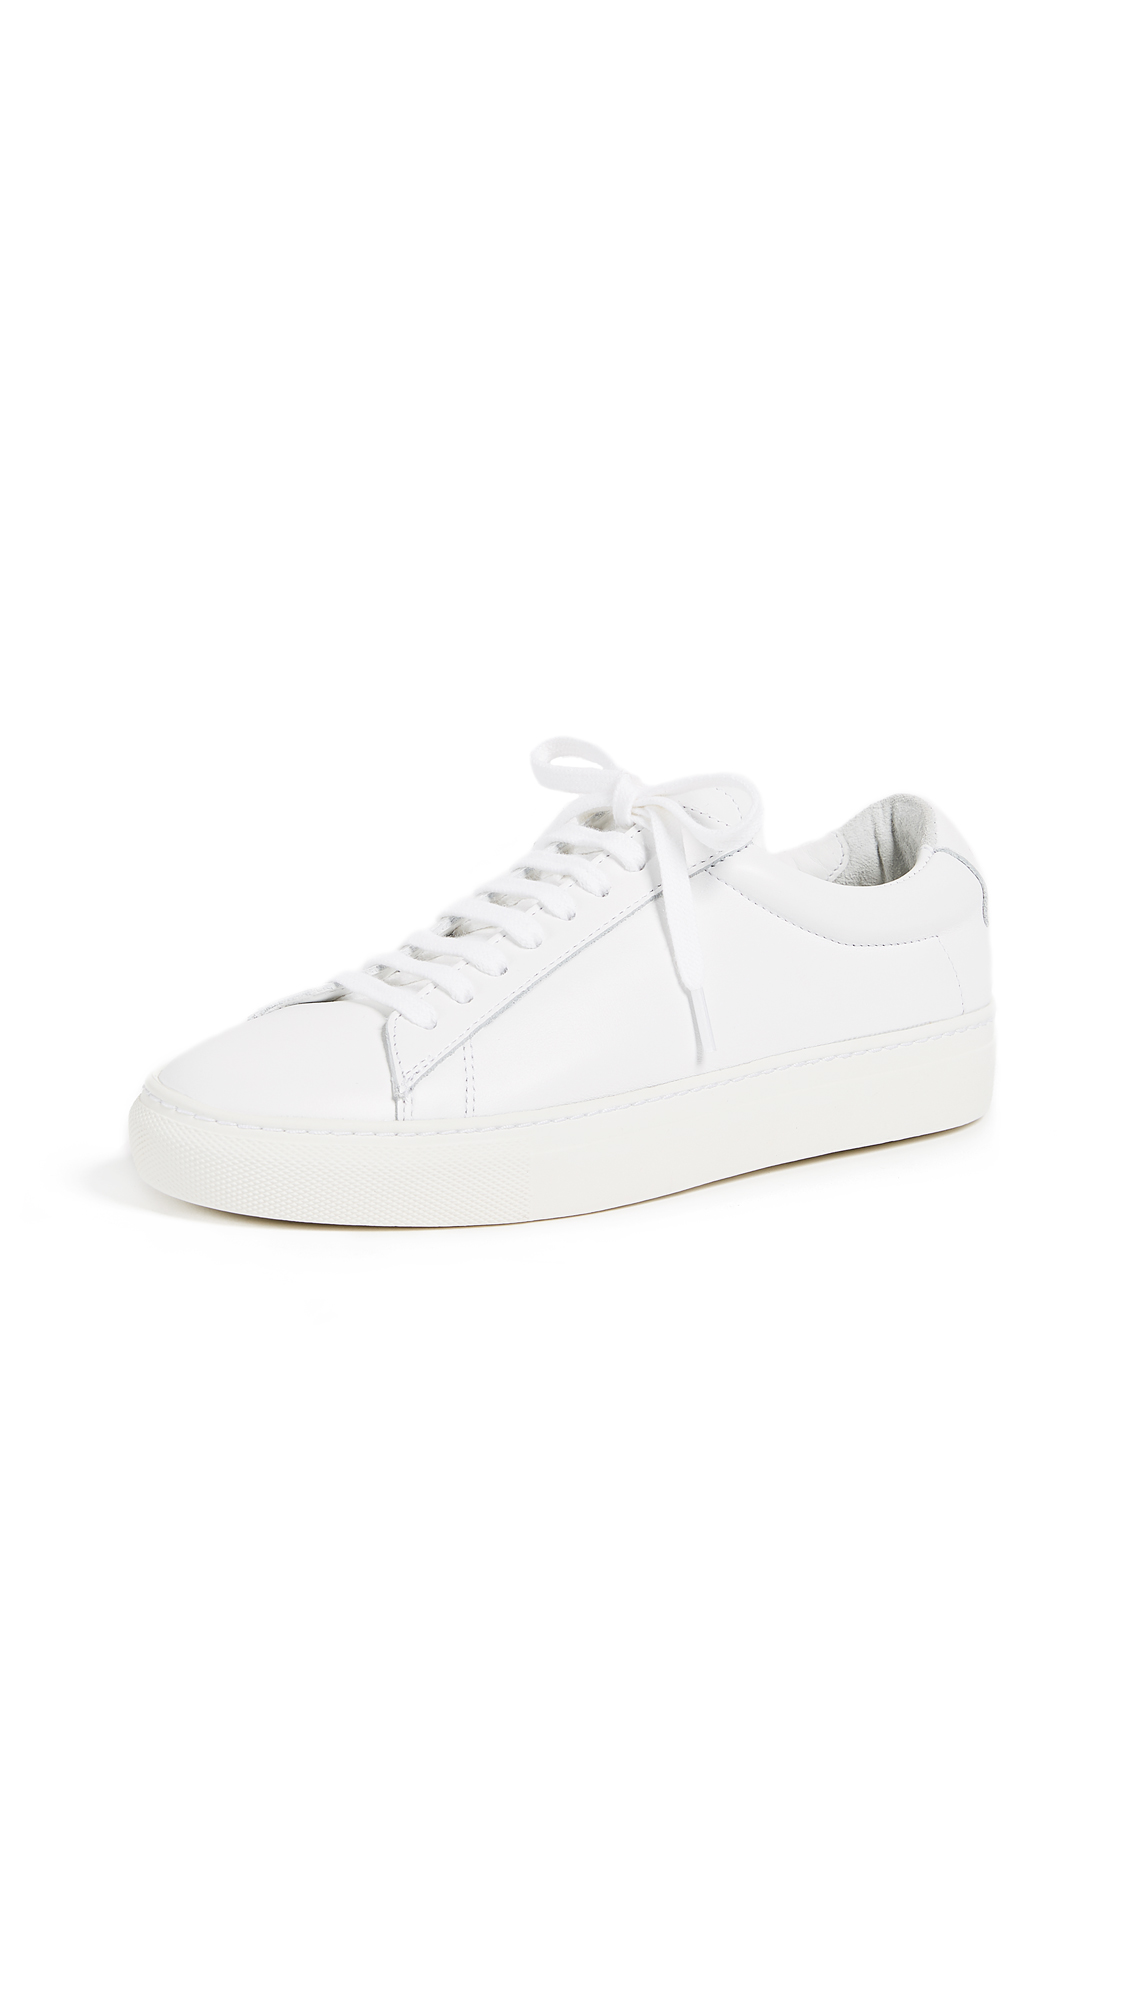 Zespa Lace Up Sneakers - White/White